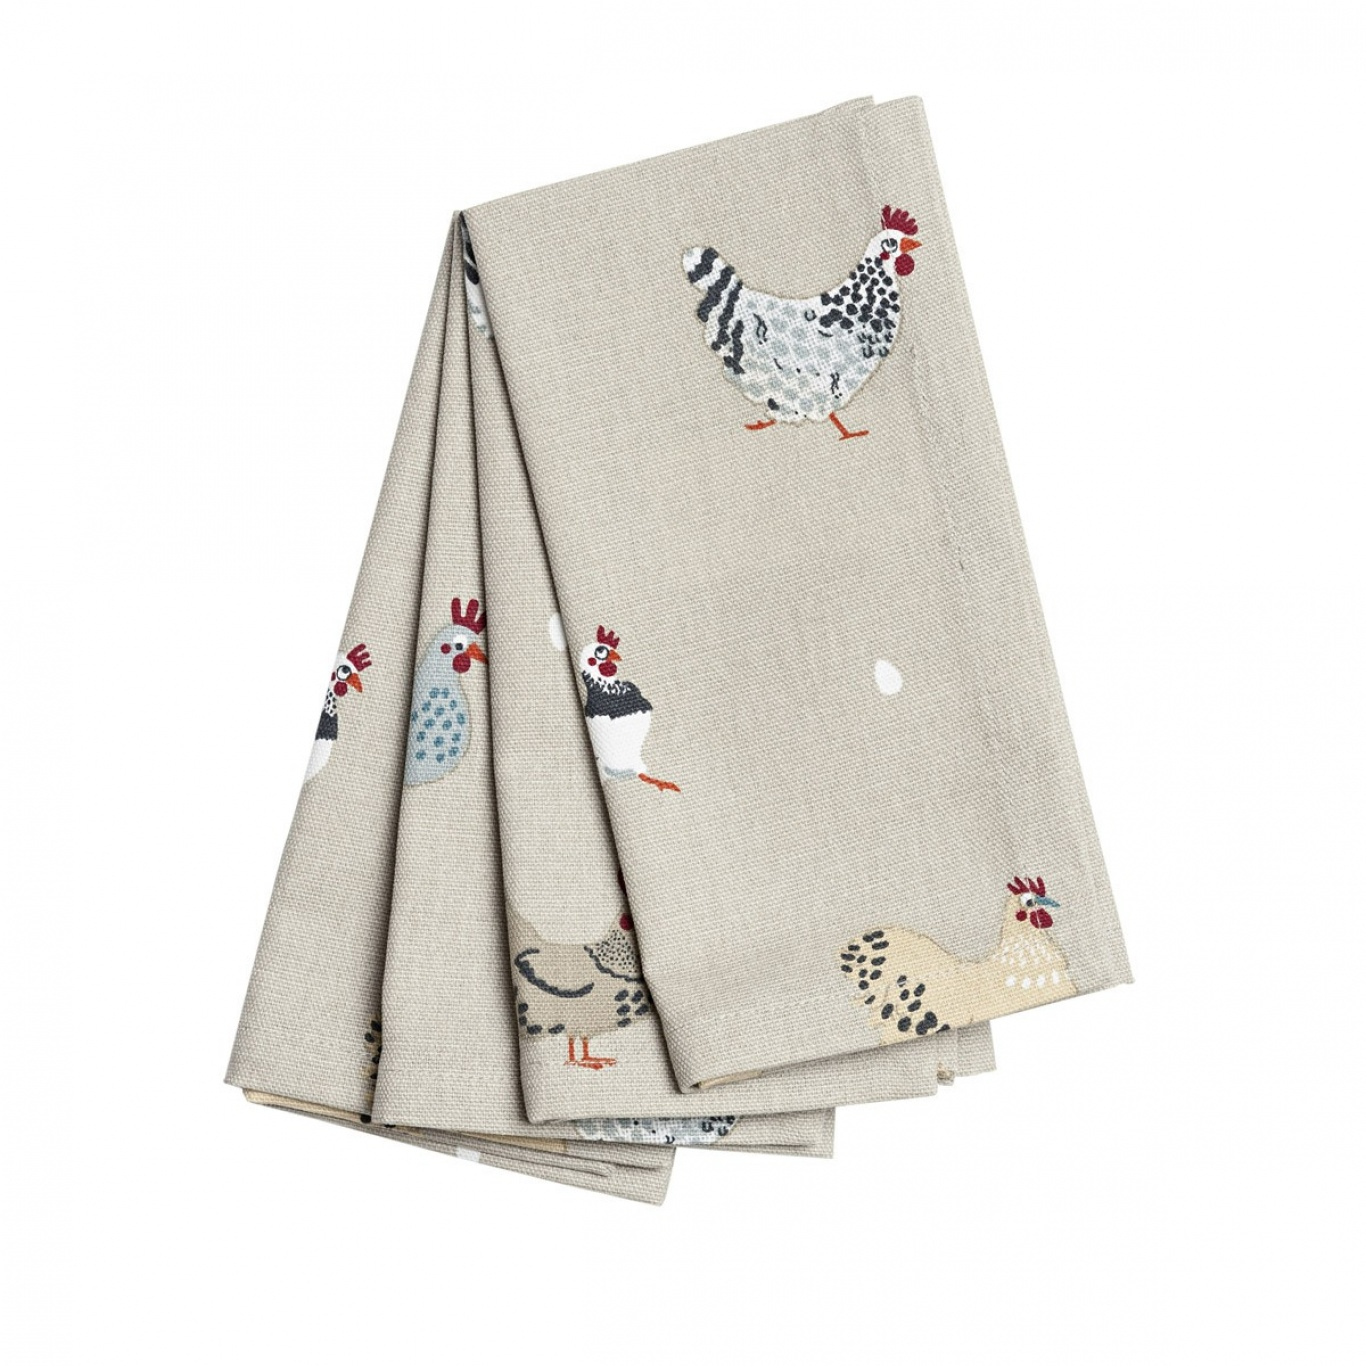 Sophie Allport Lay a Little Egg Napkins Set of 4